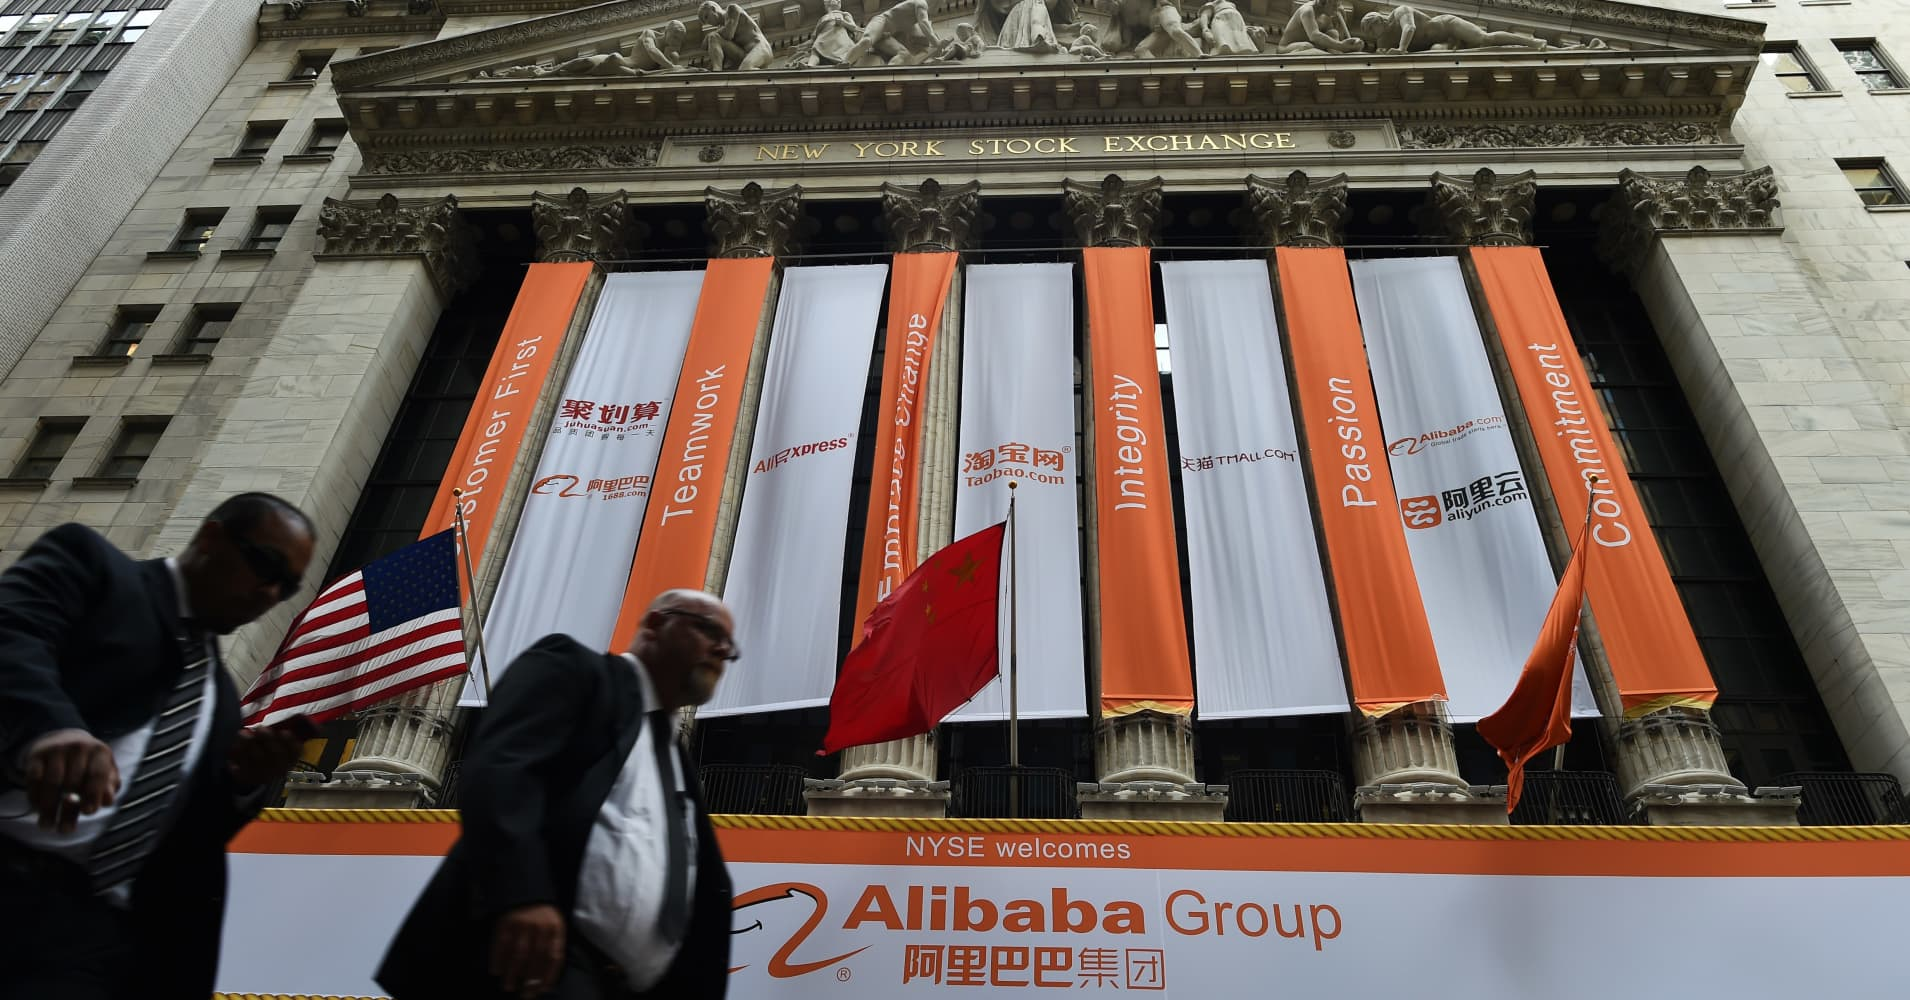 Why Alibaba is not competing with Amazon and Ebay for the US consumer